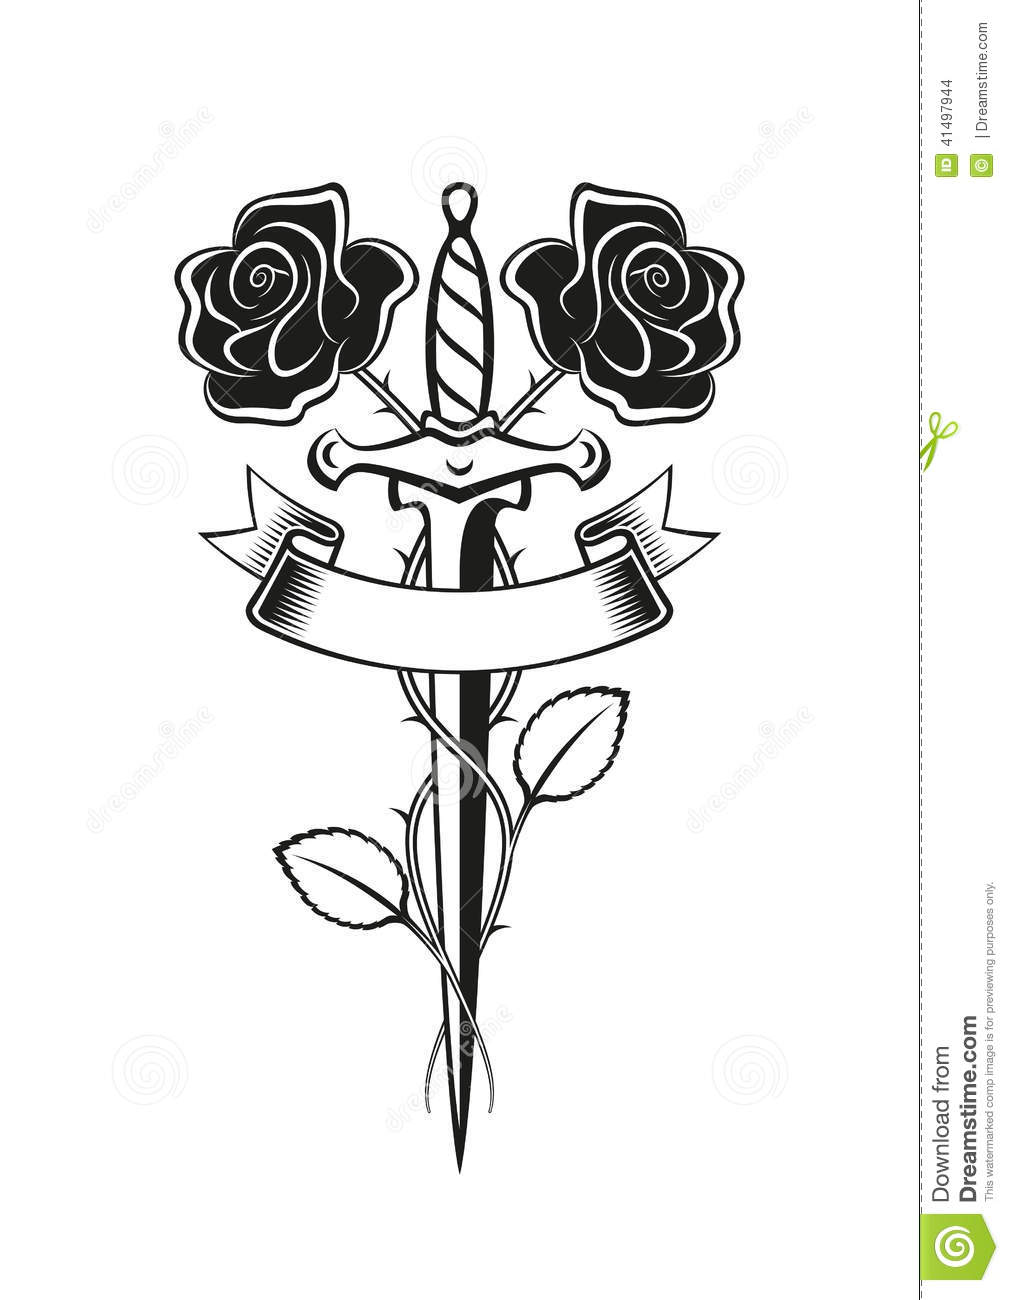 Old school tattoo dagger through heart stock photos image - Roses Dagger Tattoo Stock Vector Image 41497944